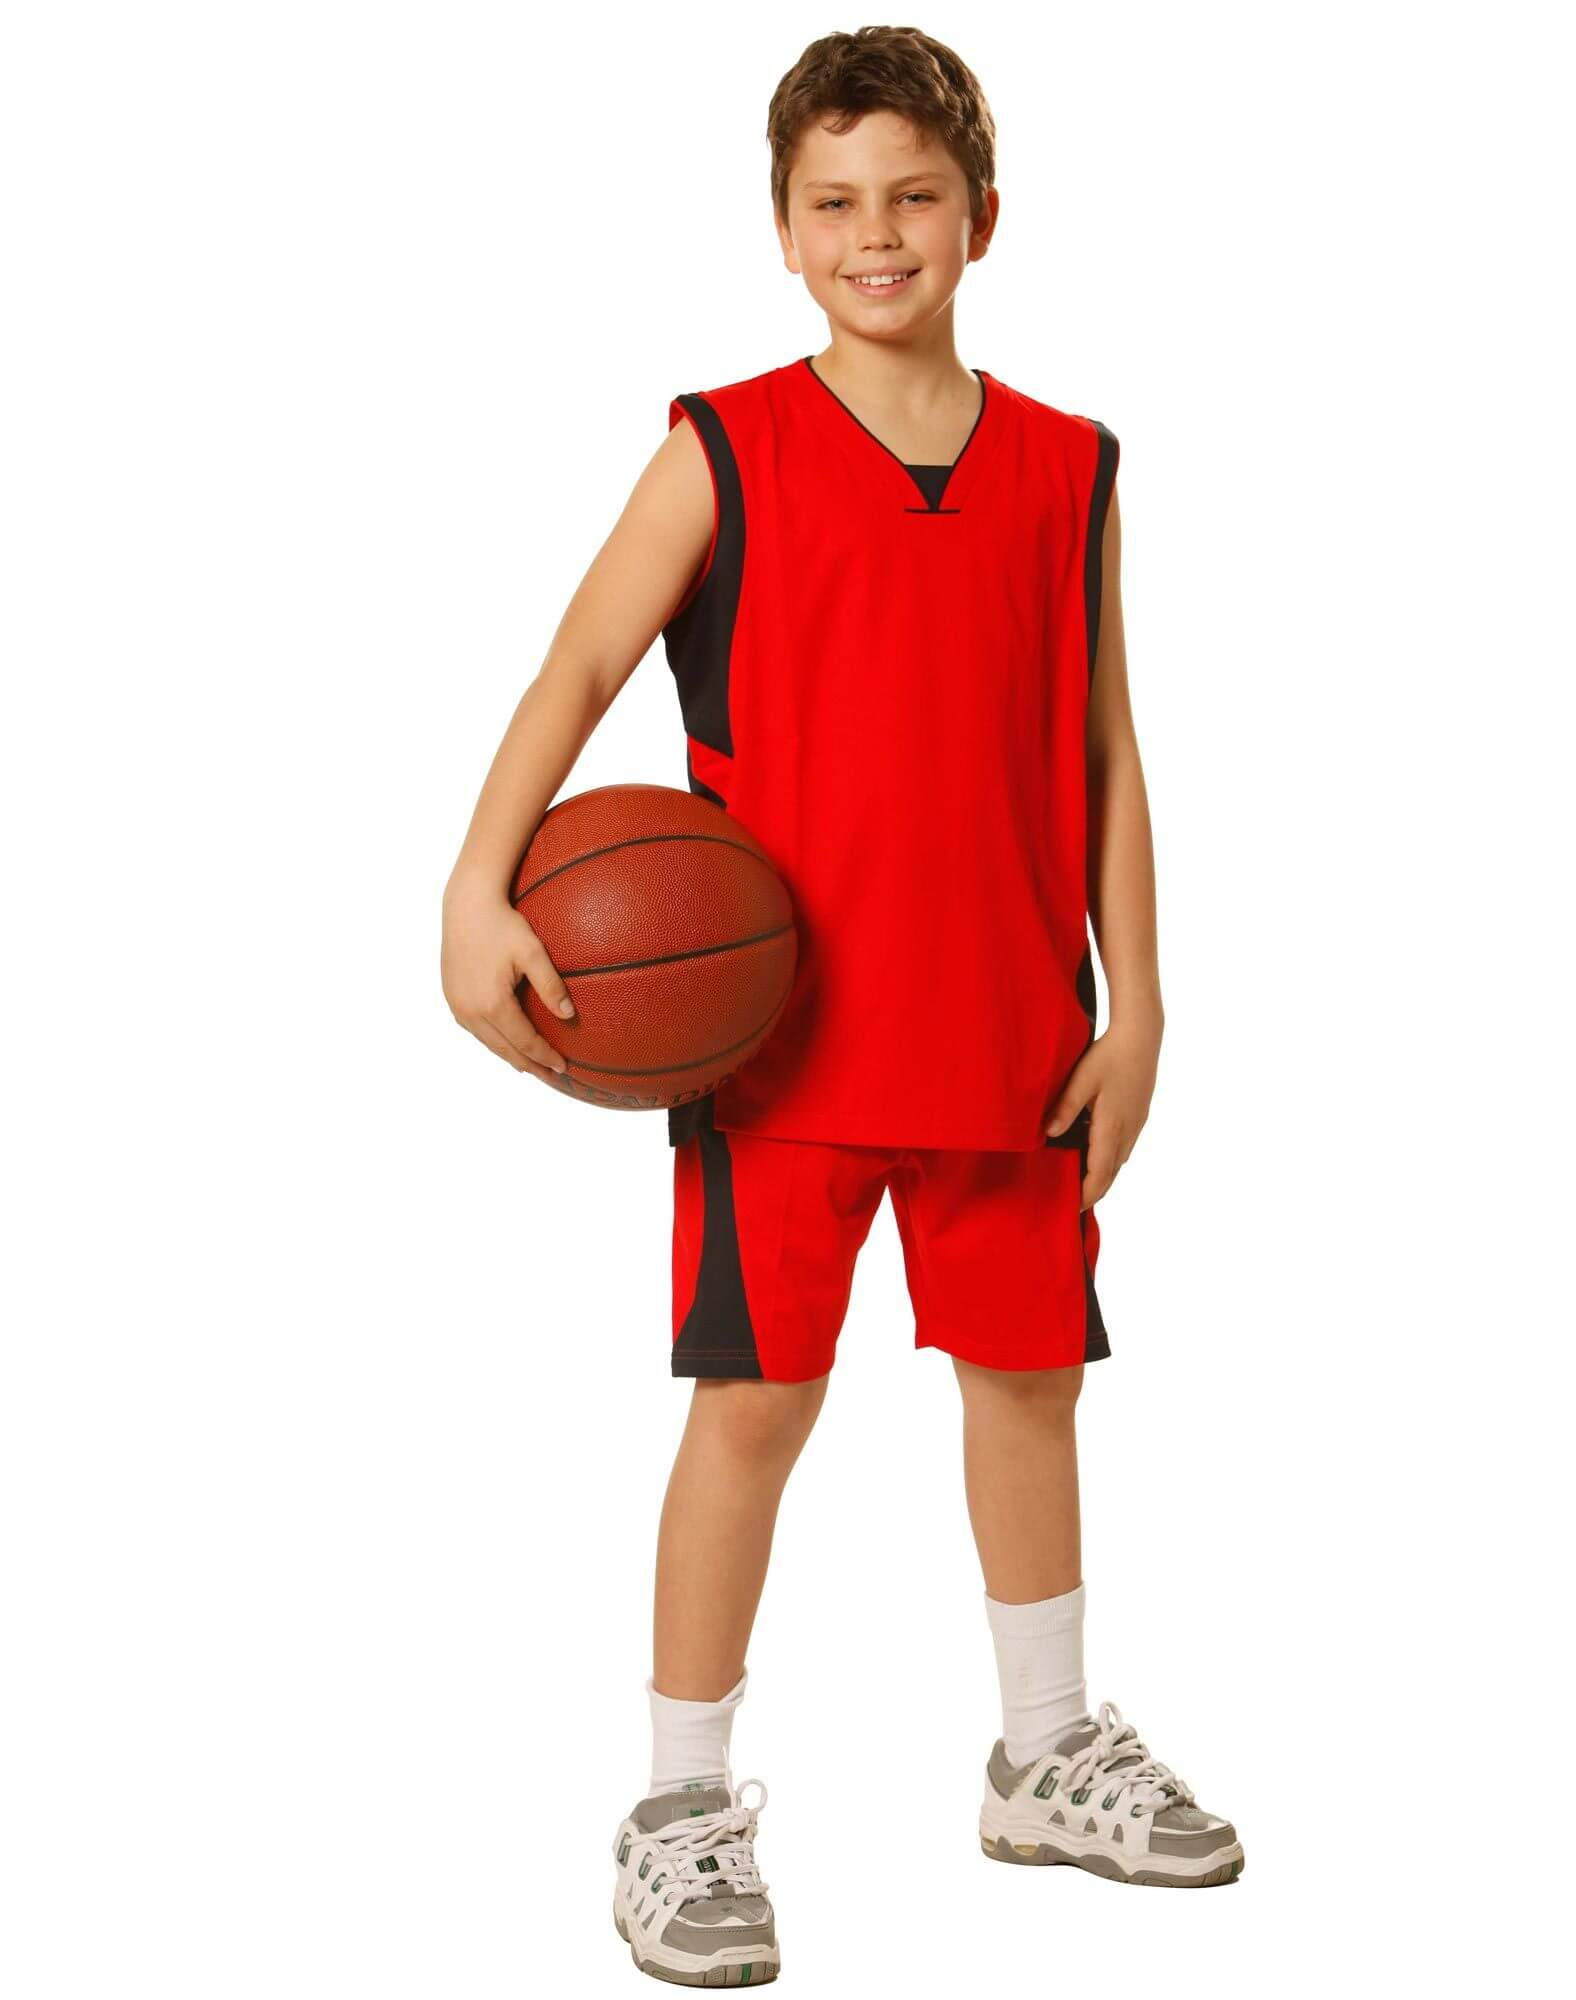 Kids Basketball Jerseys Manufacturers in Bangladesh